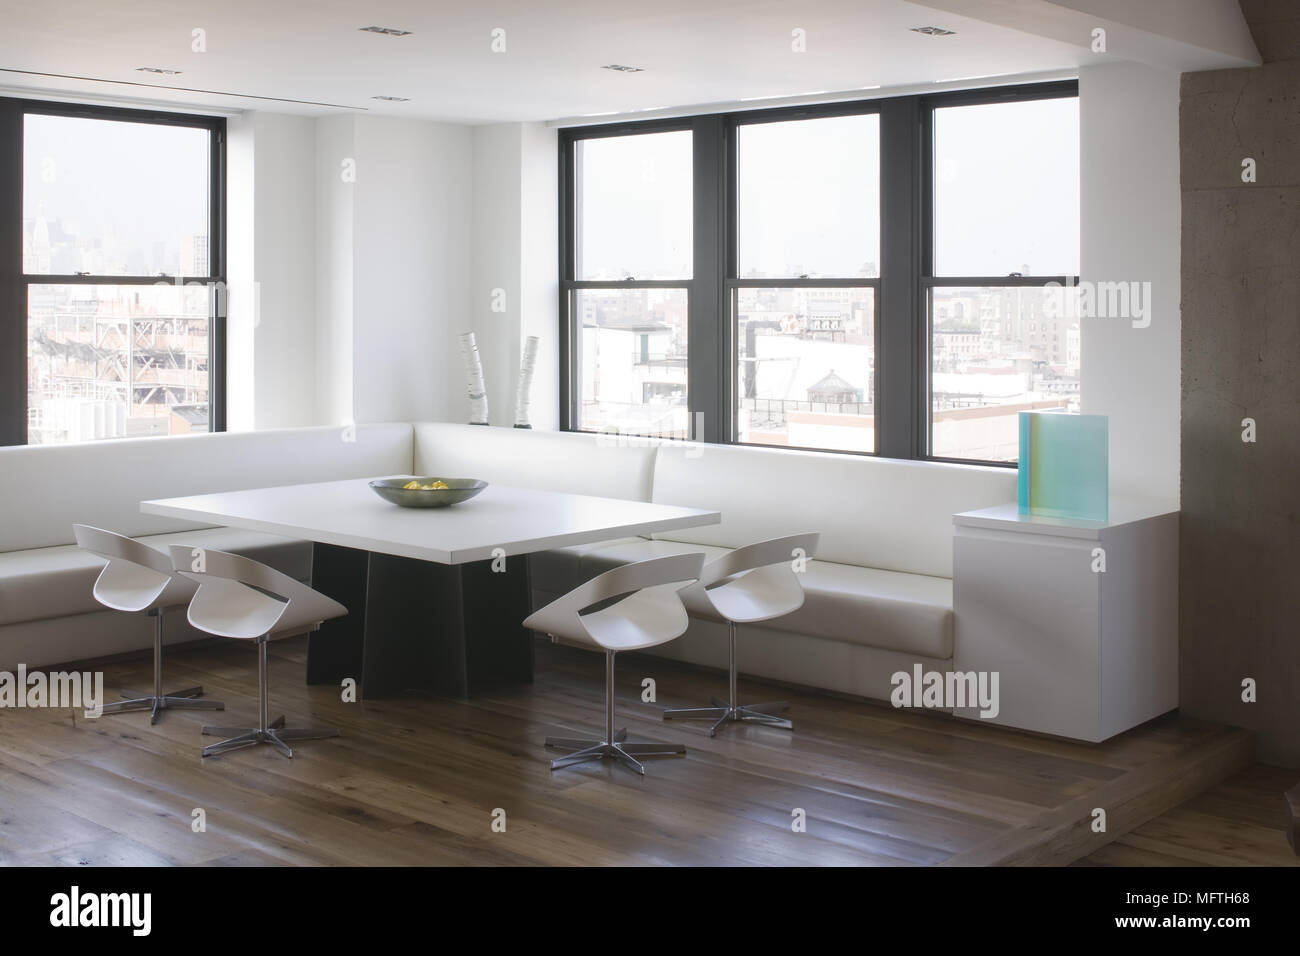 Admirable Chairs And Banquette Seating Around Table In Modern Dailytribune Chair Design For Home Dailytribuneorg